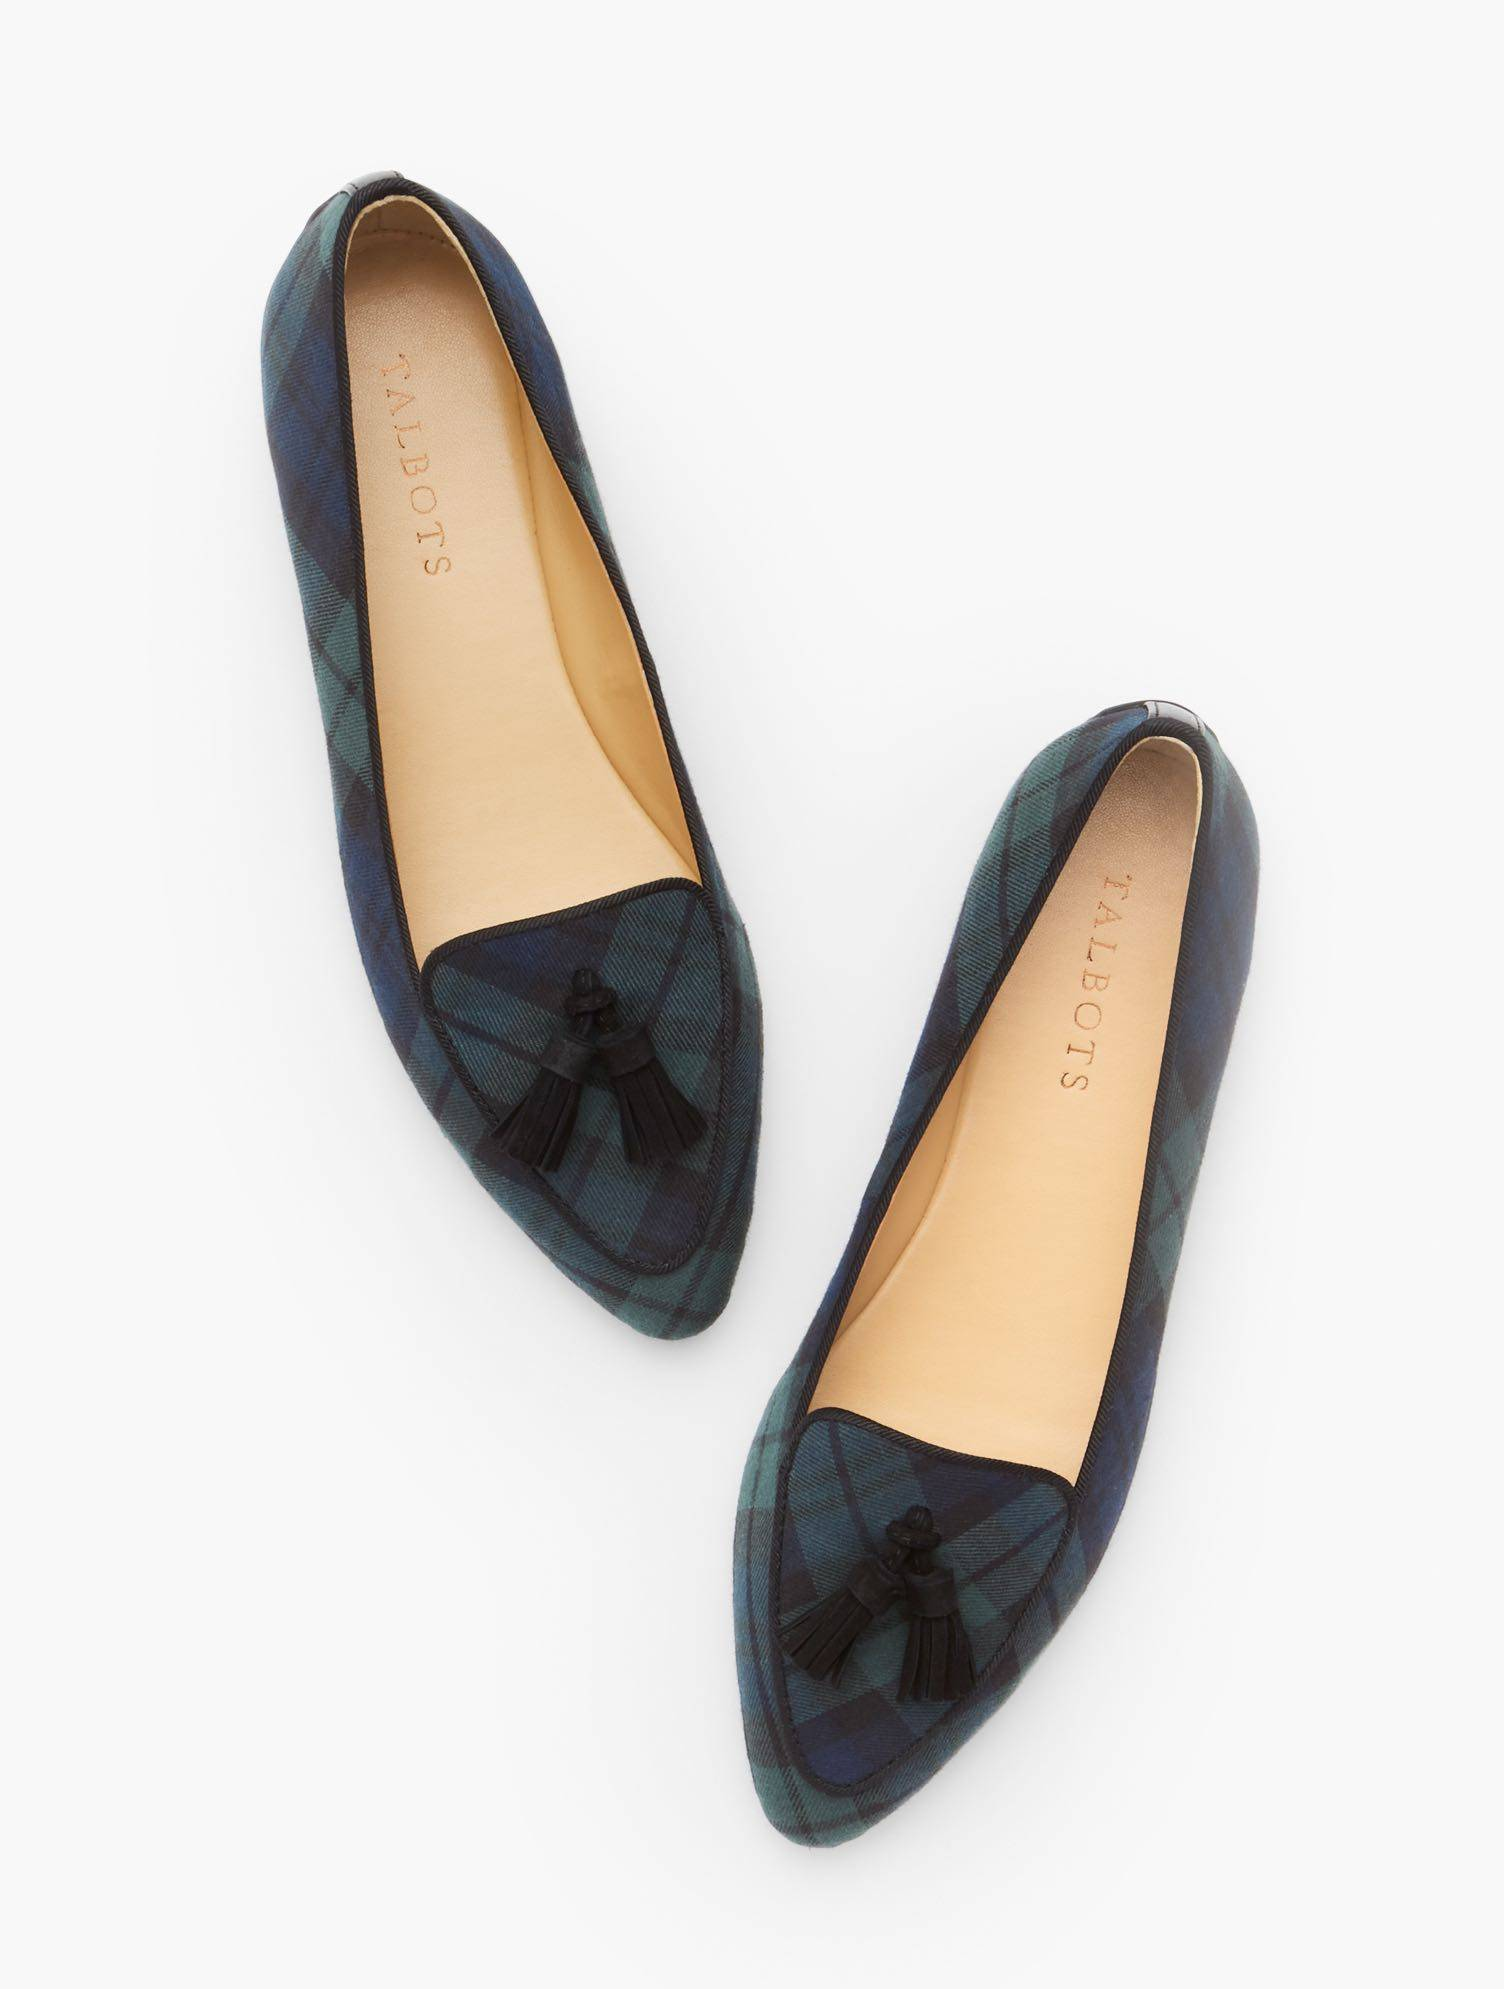 Talbots Francesca Tasseled Driving Moccasins Shoes - Black Watch Plaid - Heritage Green/Indigo - 7-1/2M - 100% Cotton Talbots  - Heritage Green/Indigo - Size: female - Size: 7-1/2M